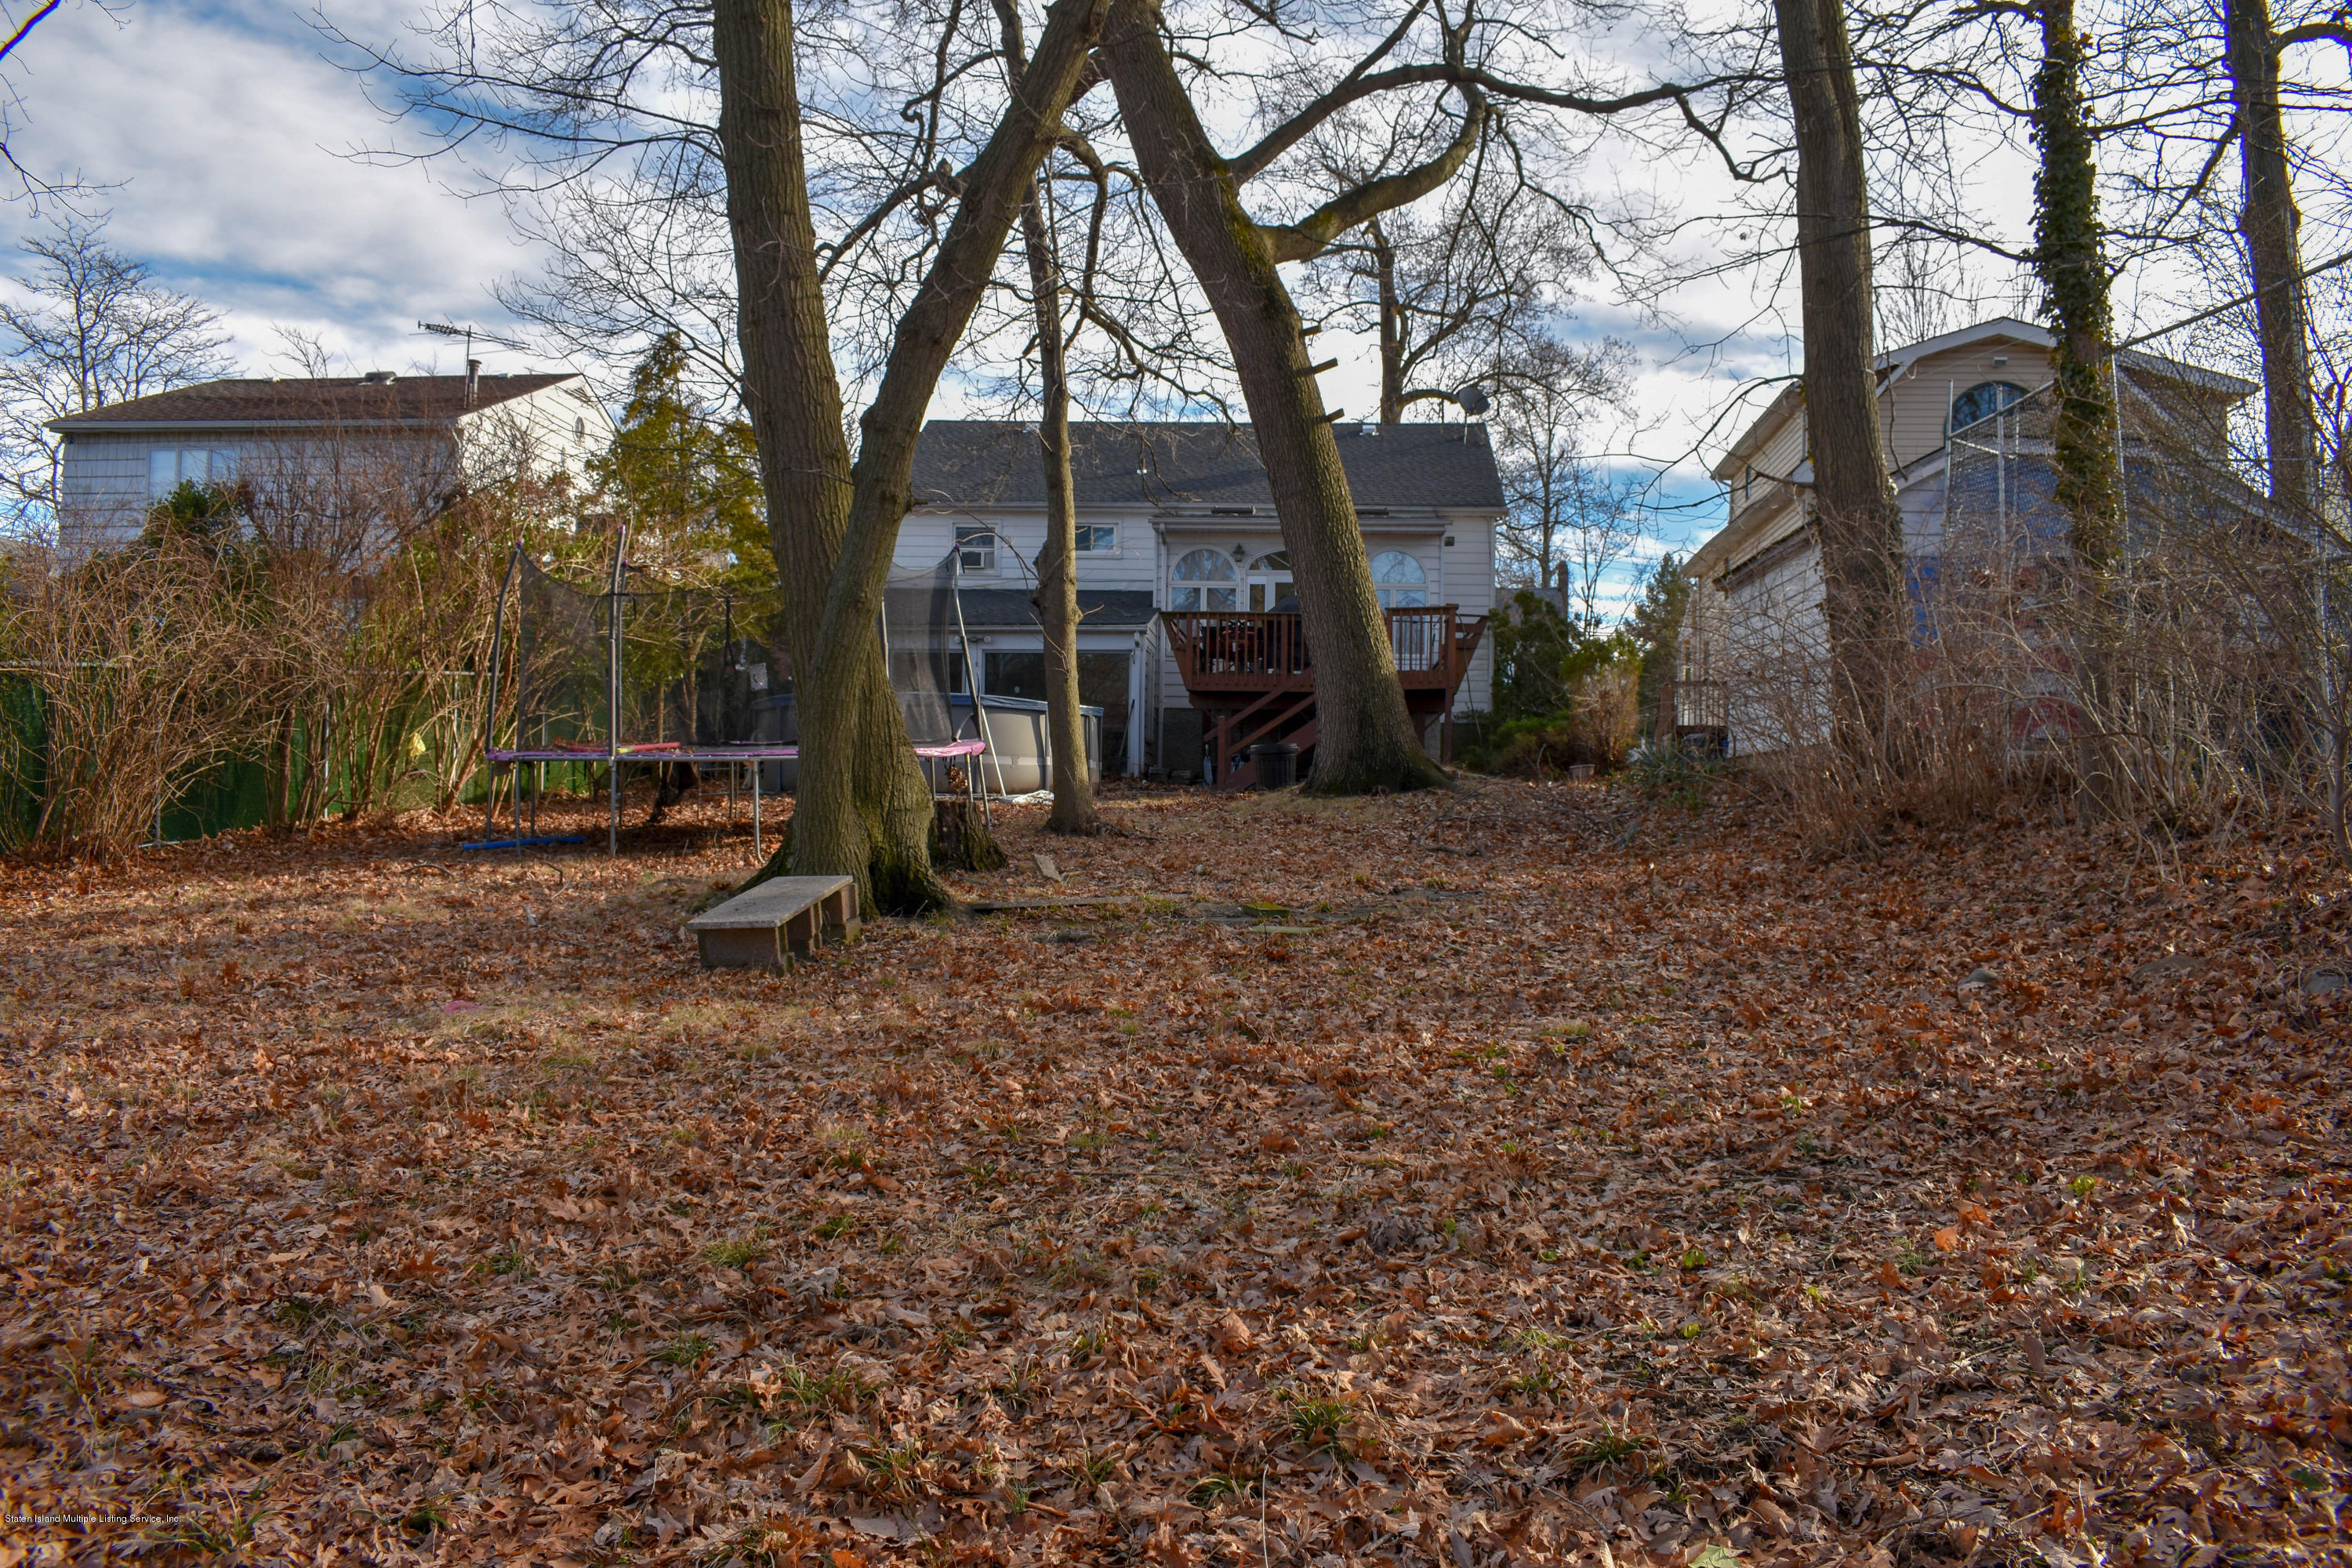 Single Family - Detached 71 Excelsior Avenue  Staten Island, NY 10309, MLS-1126131-27